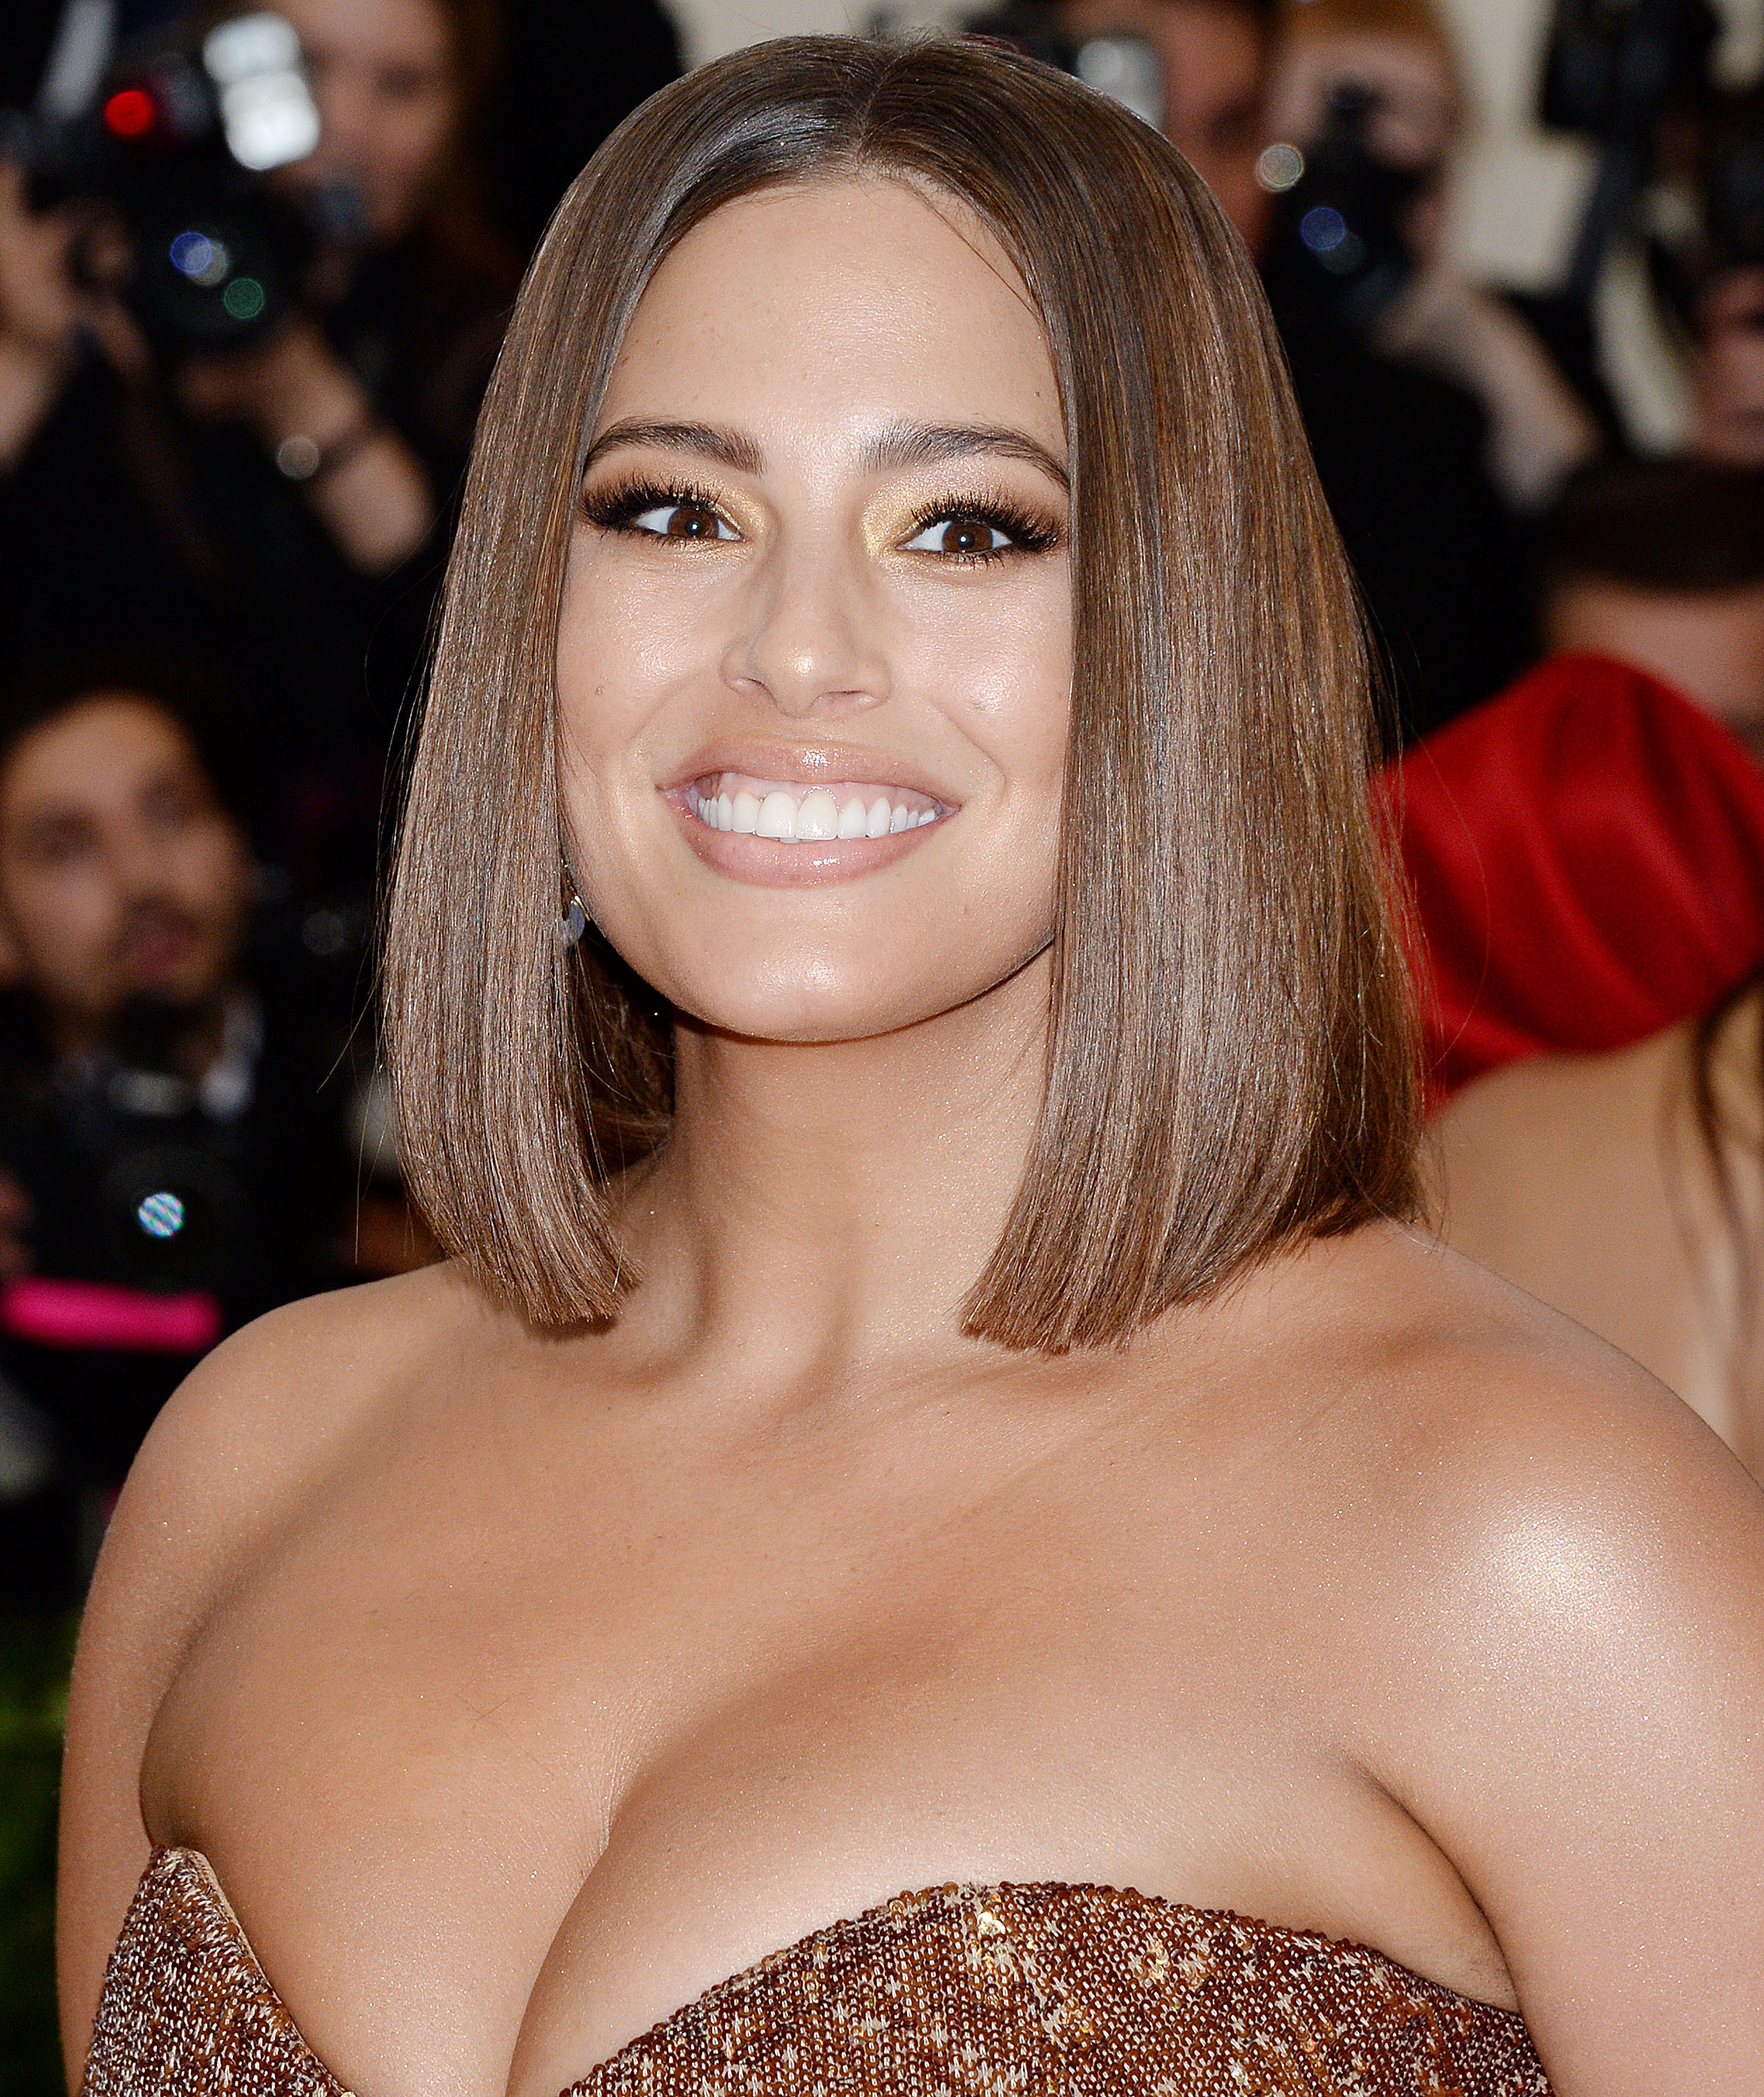 NO JUST JARED USAGE<BR/>  2018 Costume Institute Benefit: Celebrating the opening of Heavenly Bodies: Fashion and the Catholic Imagination - Arrivals <P> Pictured: Ashley Graham <B>Ref: SPL1693519  080518  </B><BR/> Picture by: Splash News<BR/> </P><P> <B>Splash News and Pictures</B><BR/> Los Angeles:310-821-2666<BR/> New York:212-619-2666<BR/> London:870-934-2666<BR/> <span id=